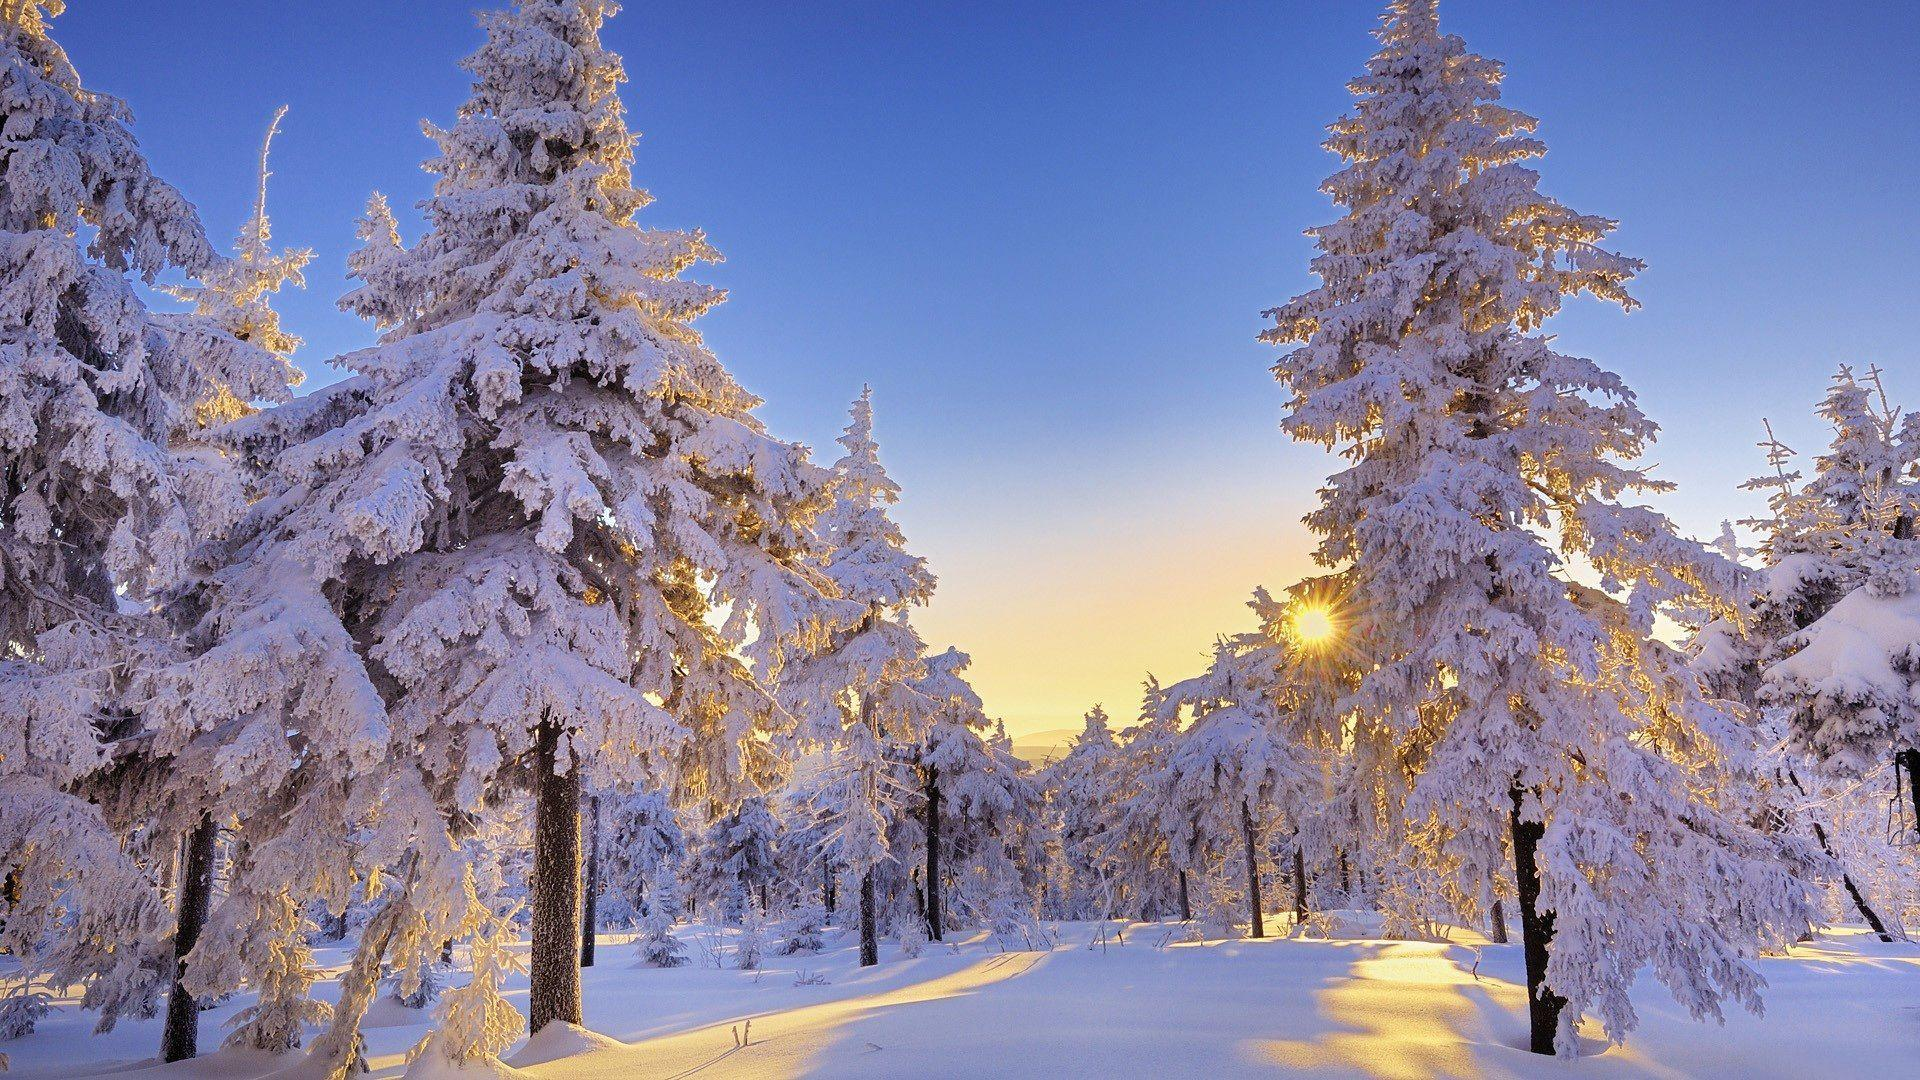 Winter Wallpaper HD 10486 1920x1080 px ~ FreeWallSource.